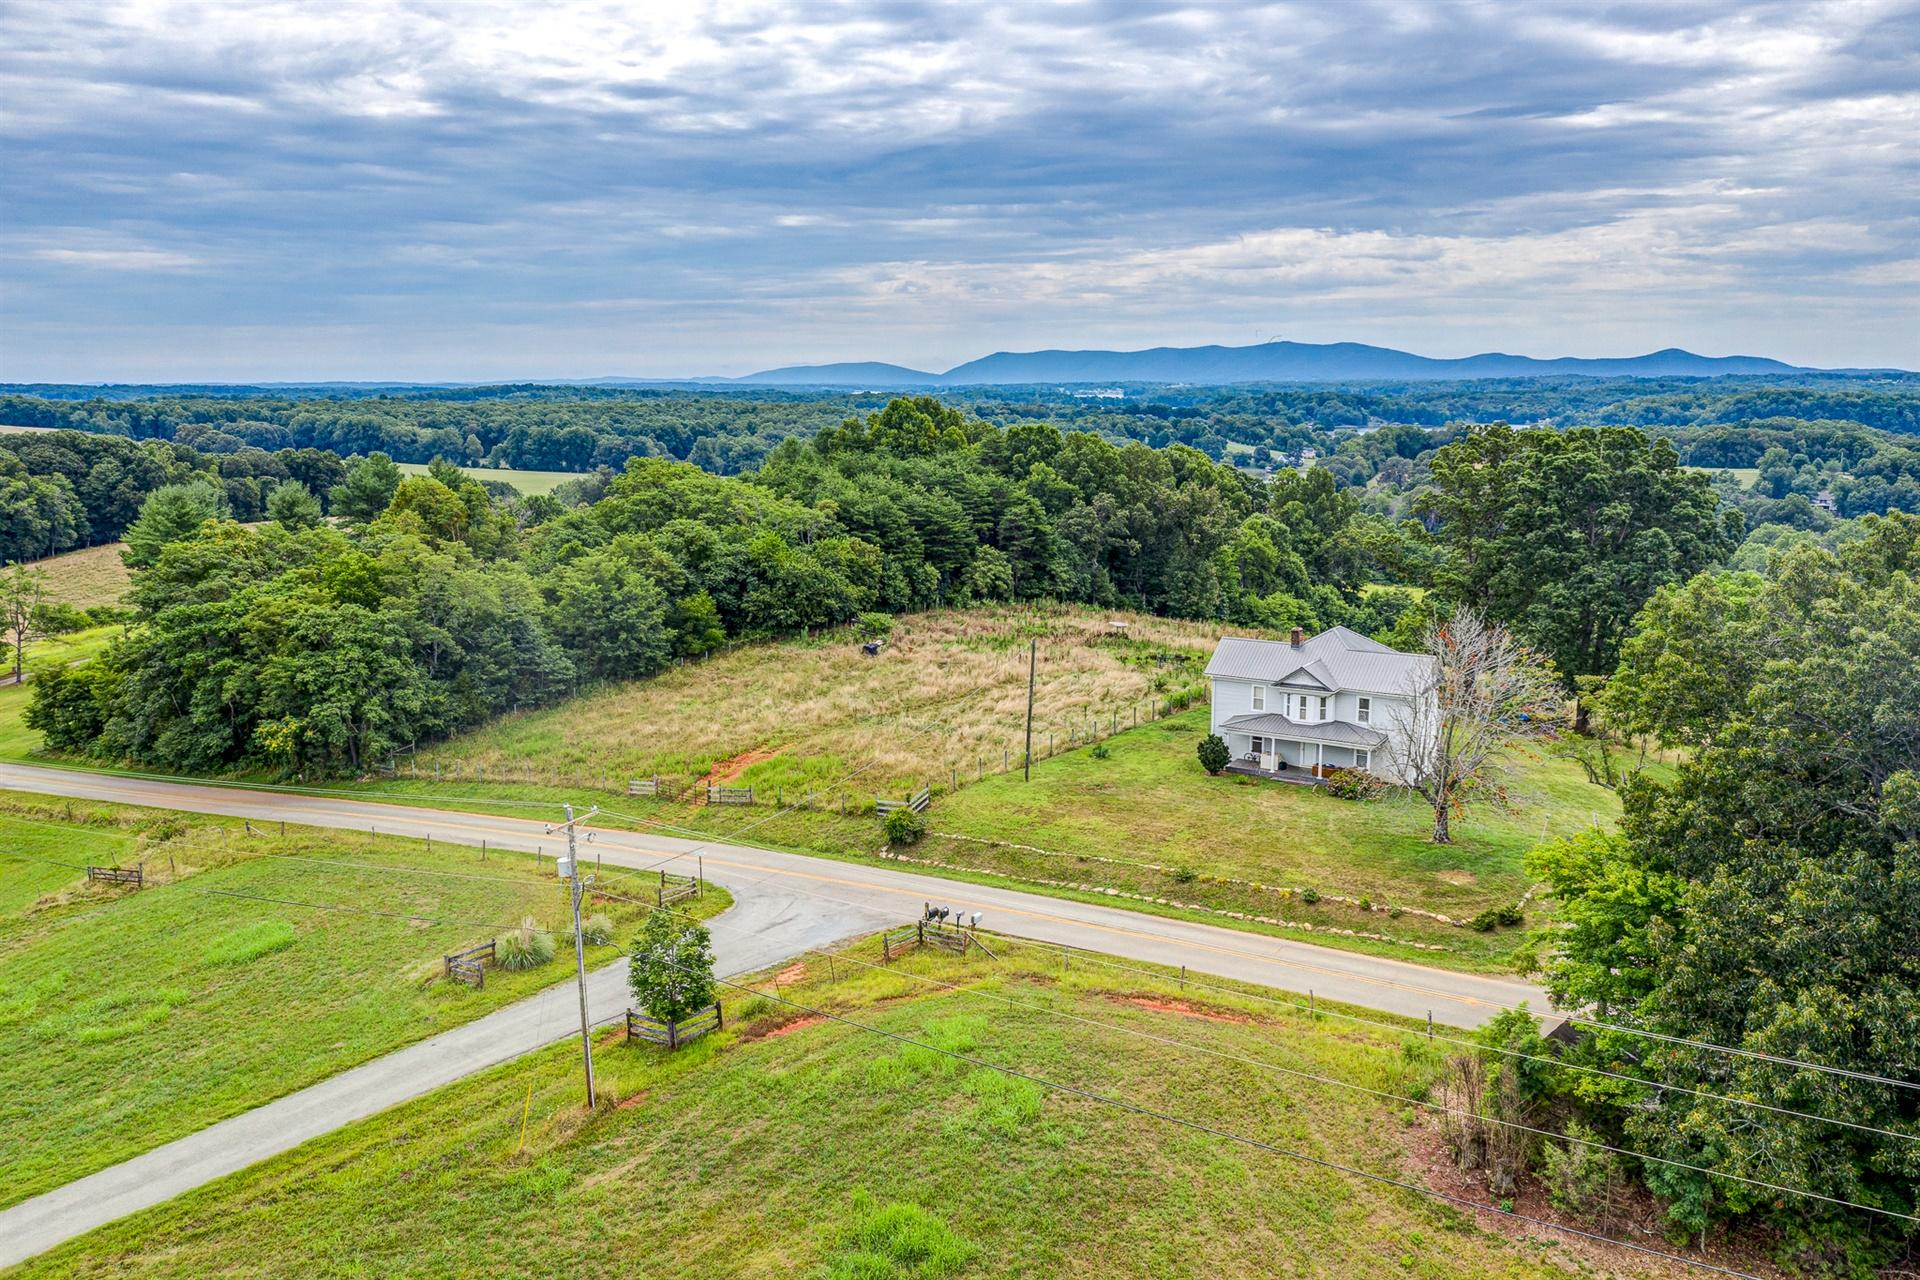 Photo of Tract B Crafts Ford RD Wirtz VA 24184